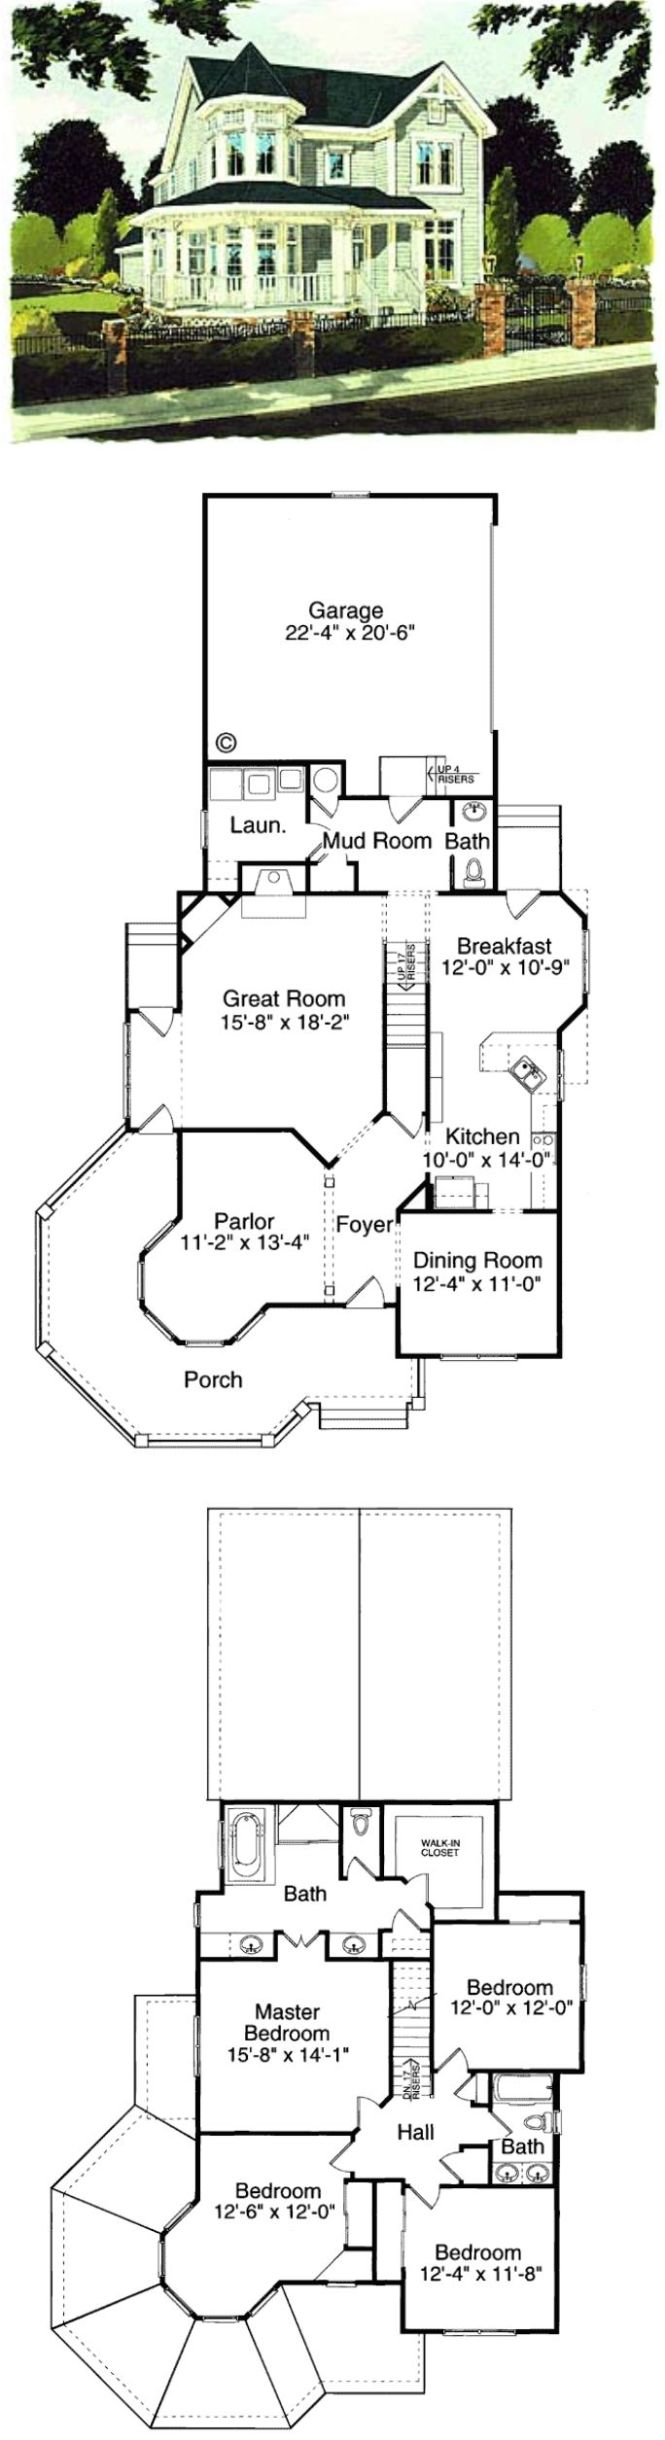 Nice Layout And Exterior Plans For A 4 Bedroom Victorian Farmhouse